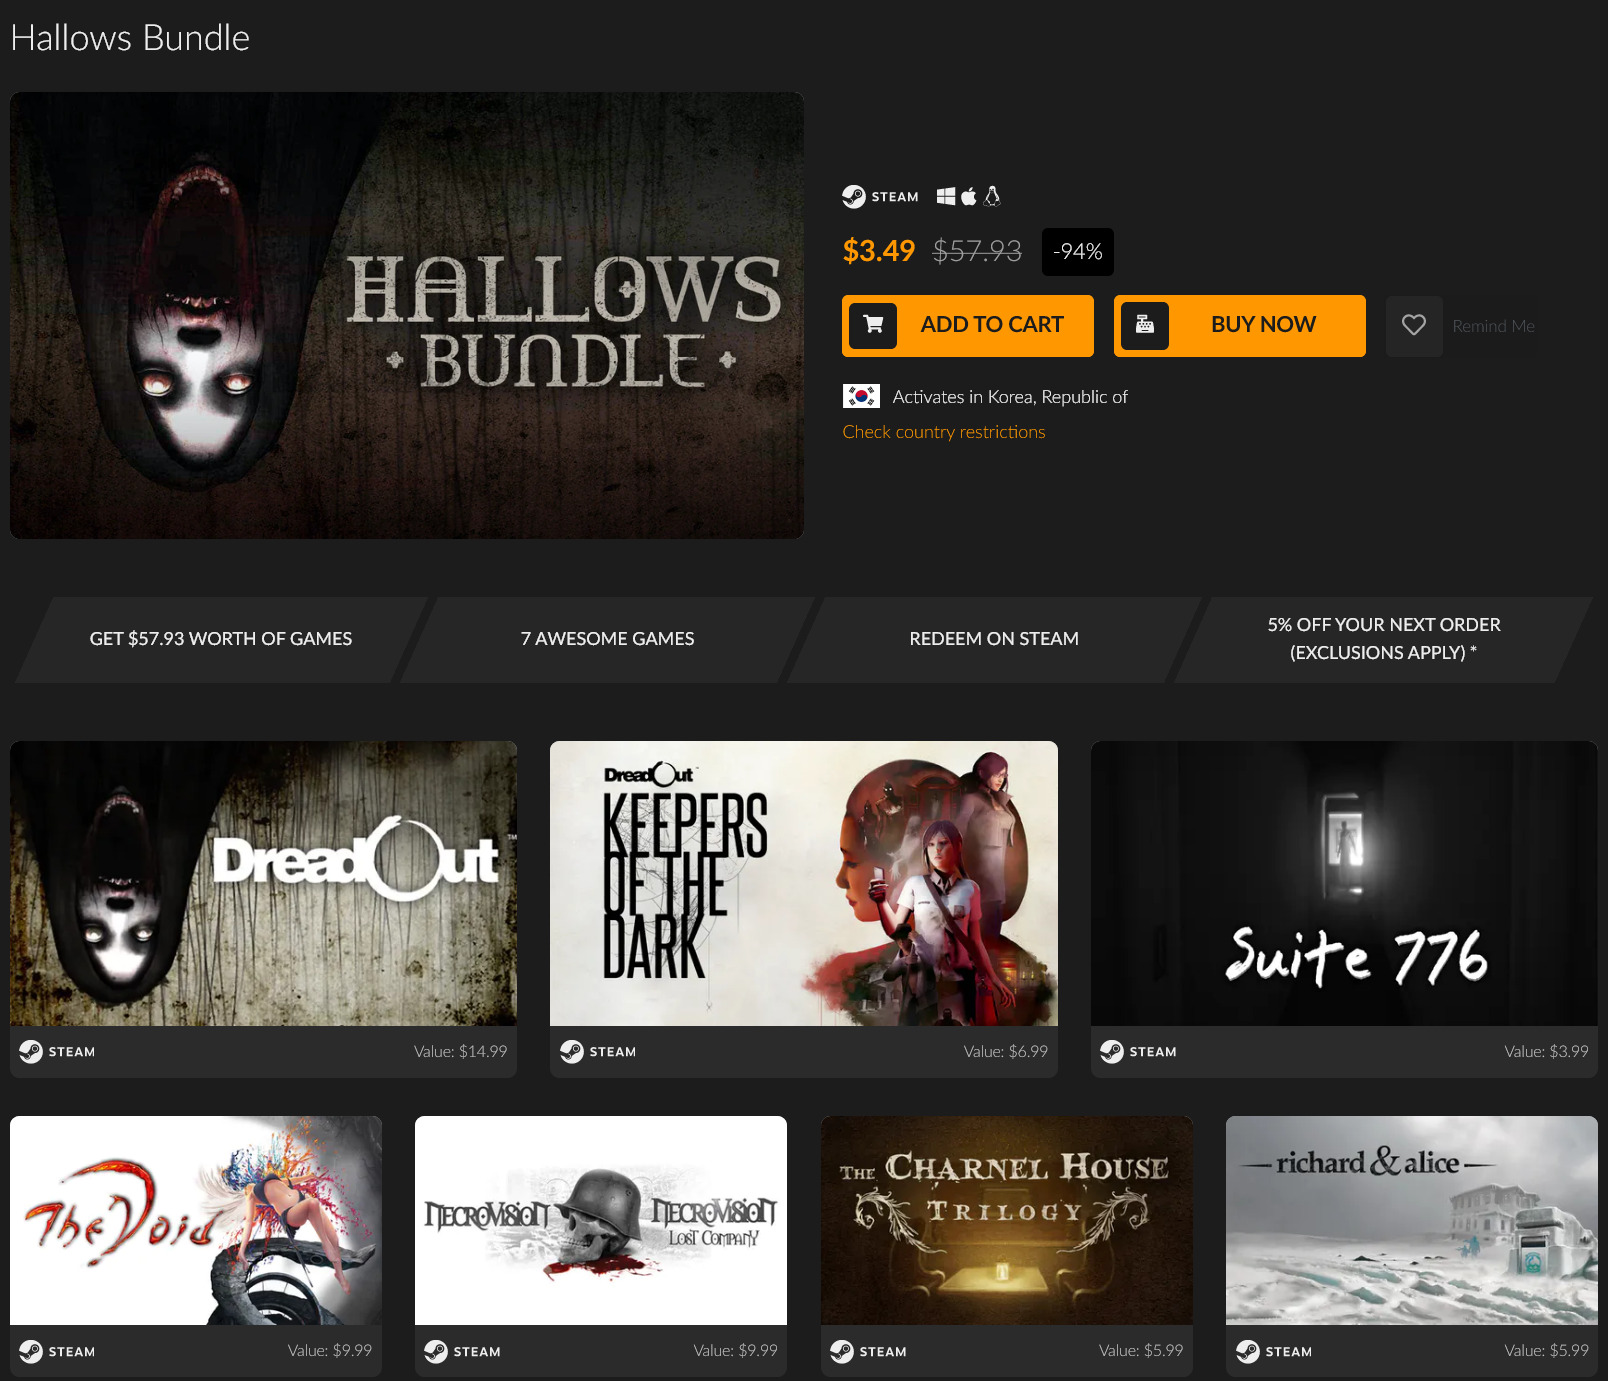 Screenshot_2020-10-20 Hallows Bundle Steam Game Bundle Fanatical.jpg